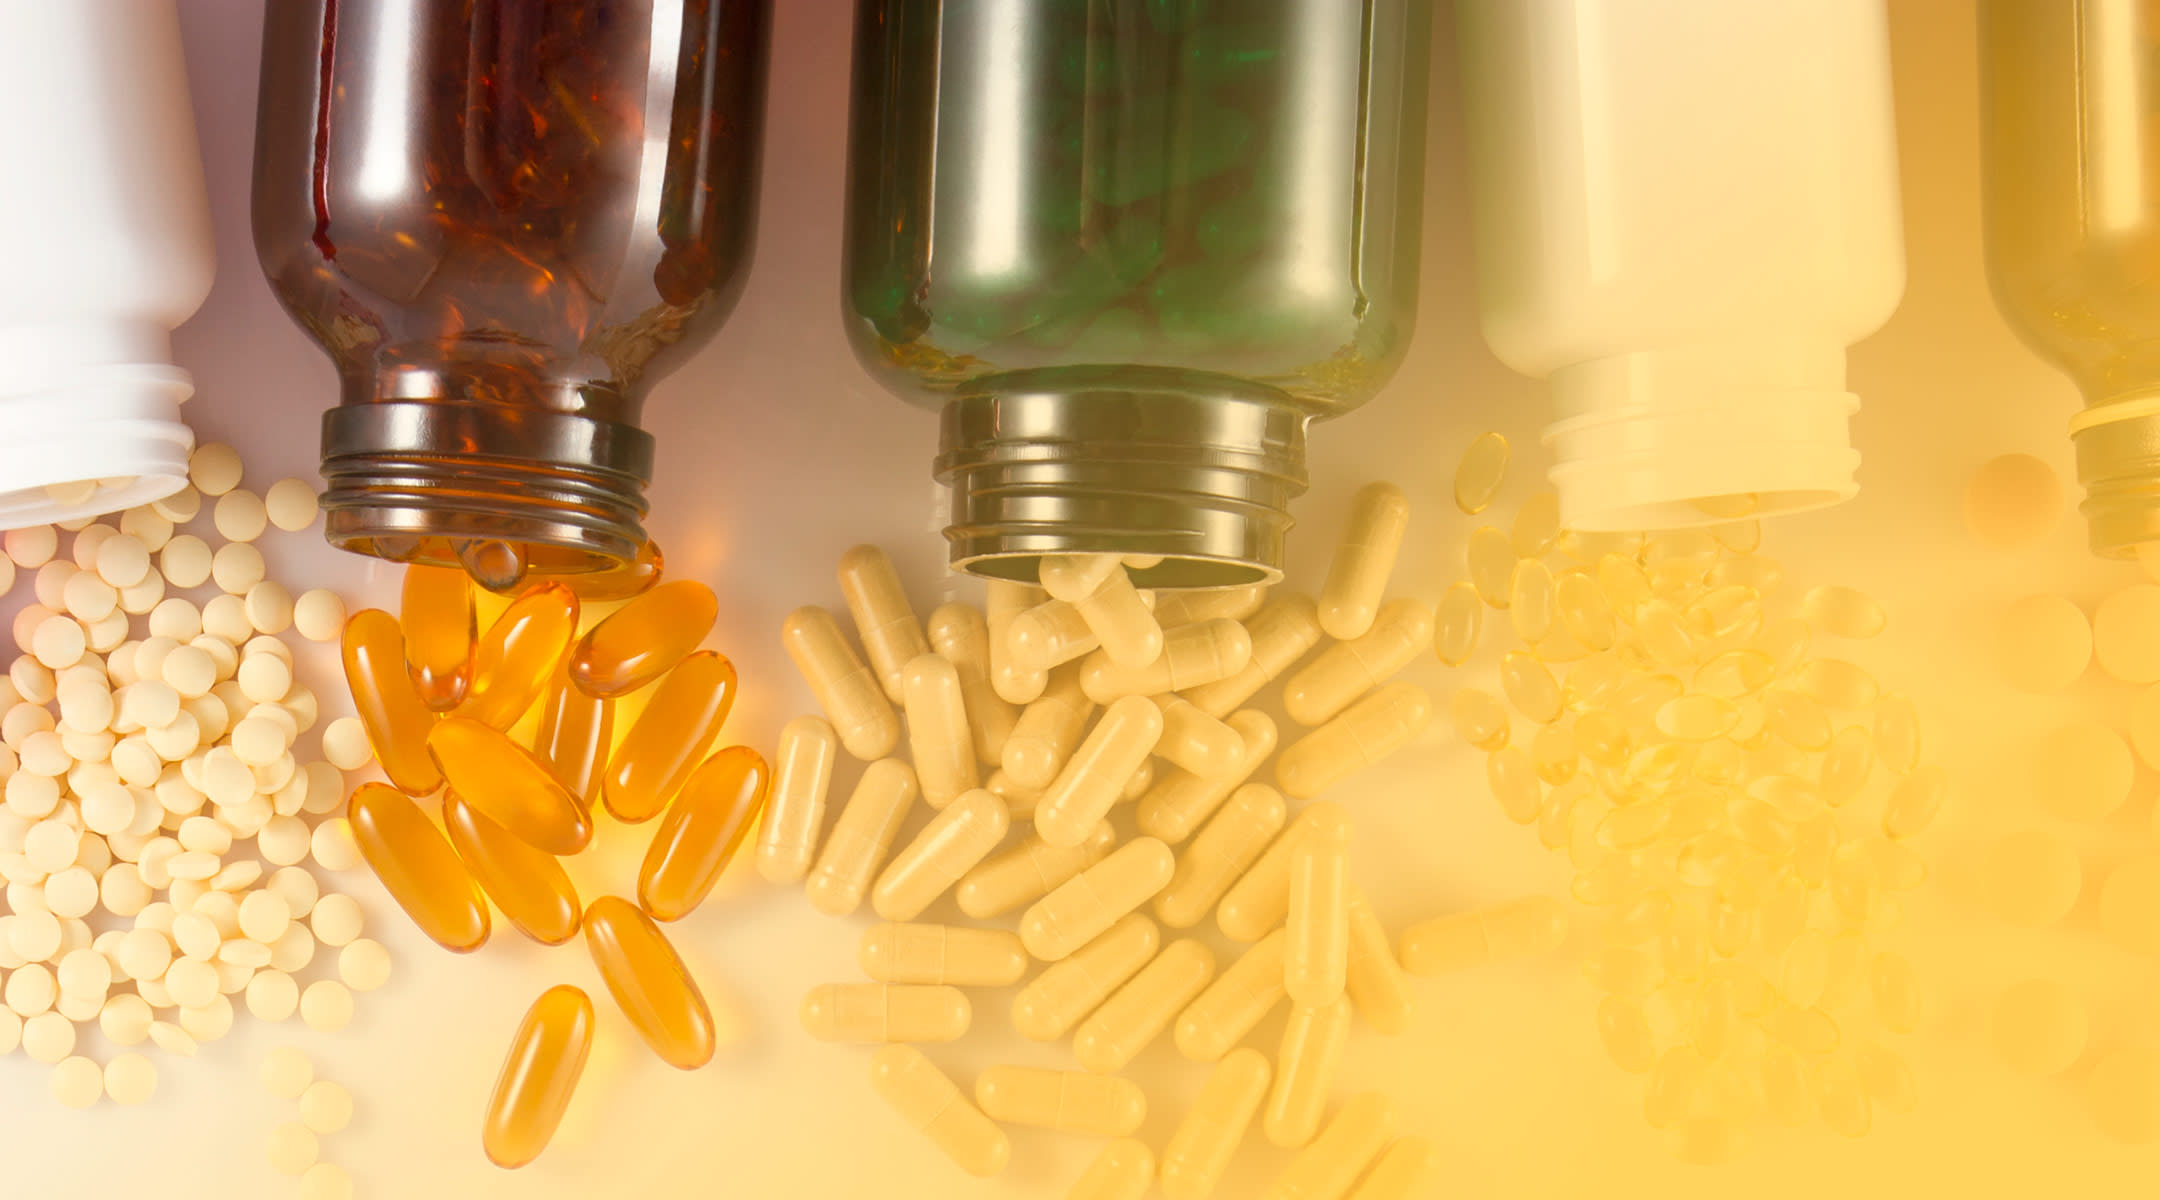 vitamin bottles with vitamins spilling out